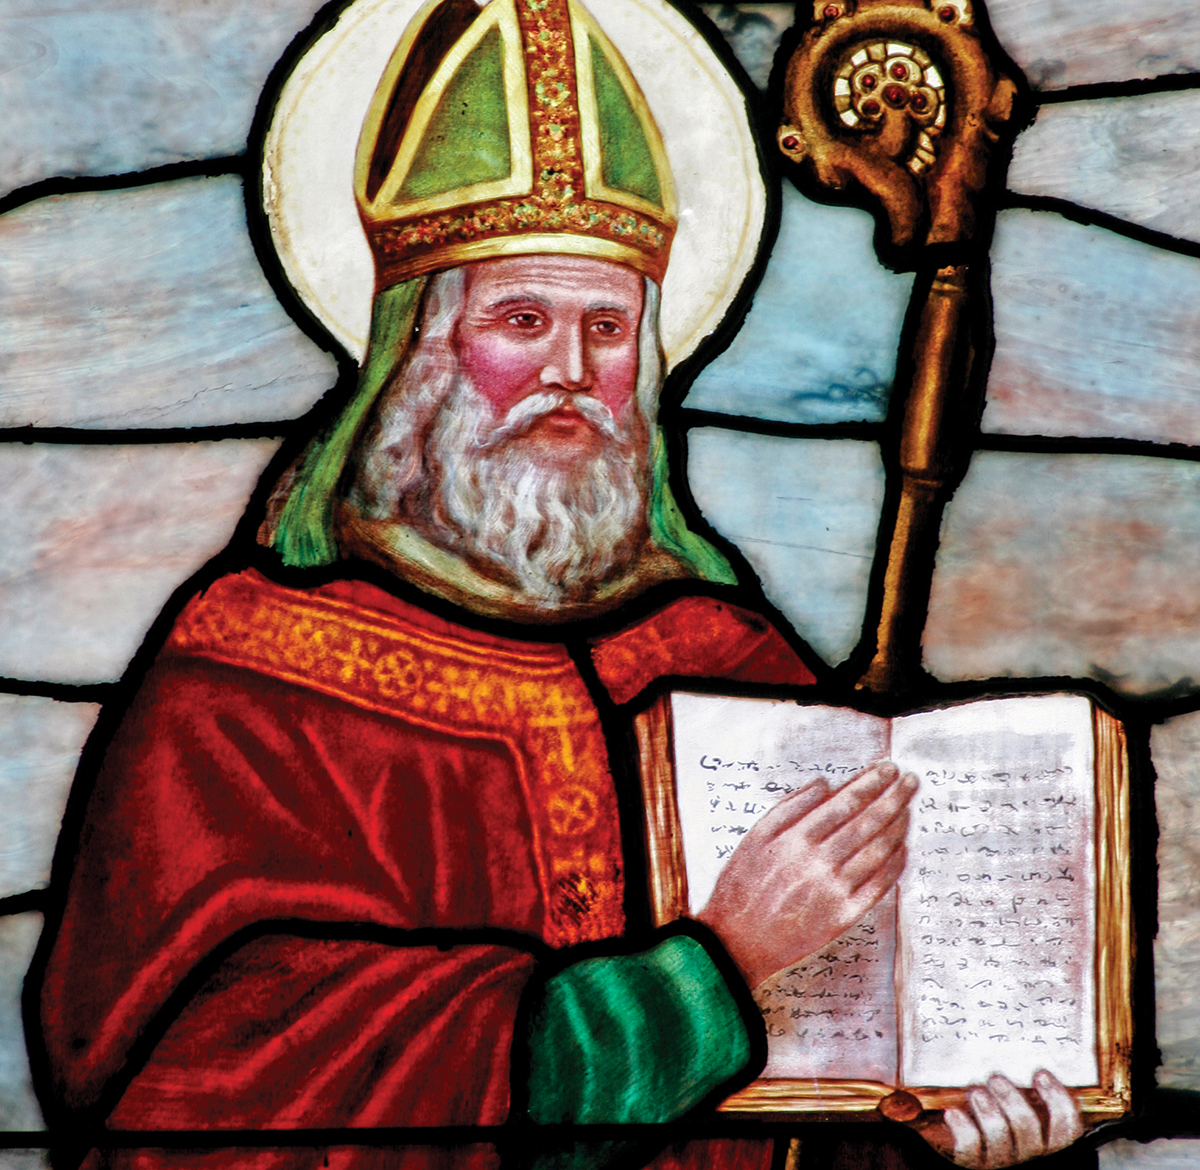 St. Patrick's Day: Joy during Lent